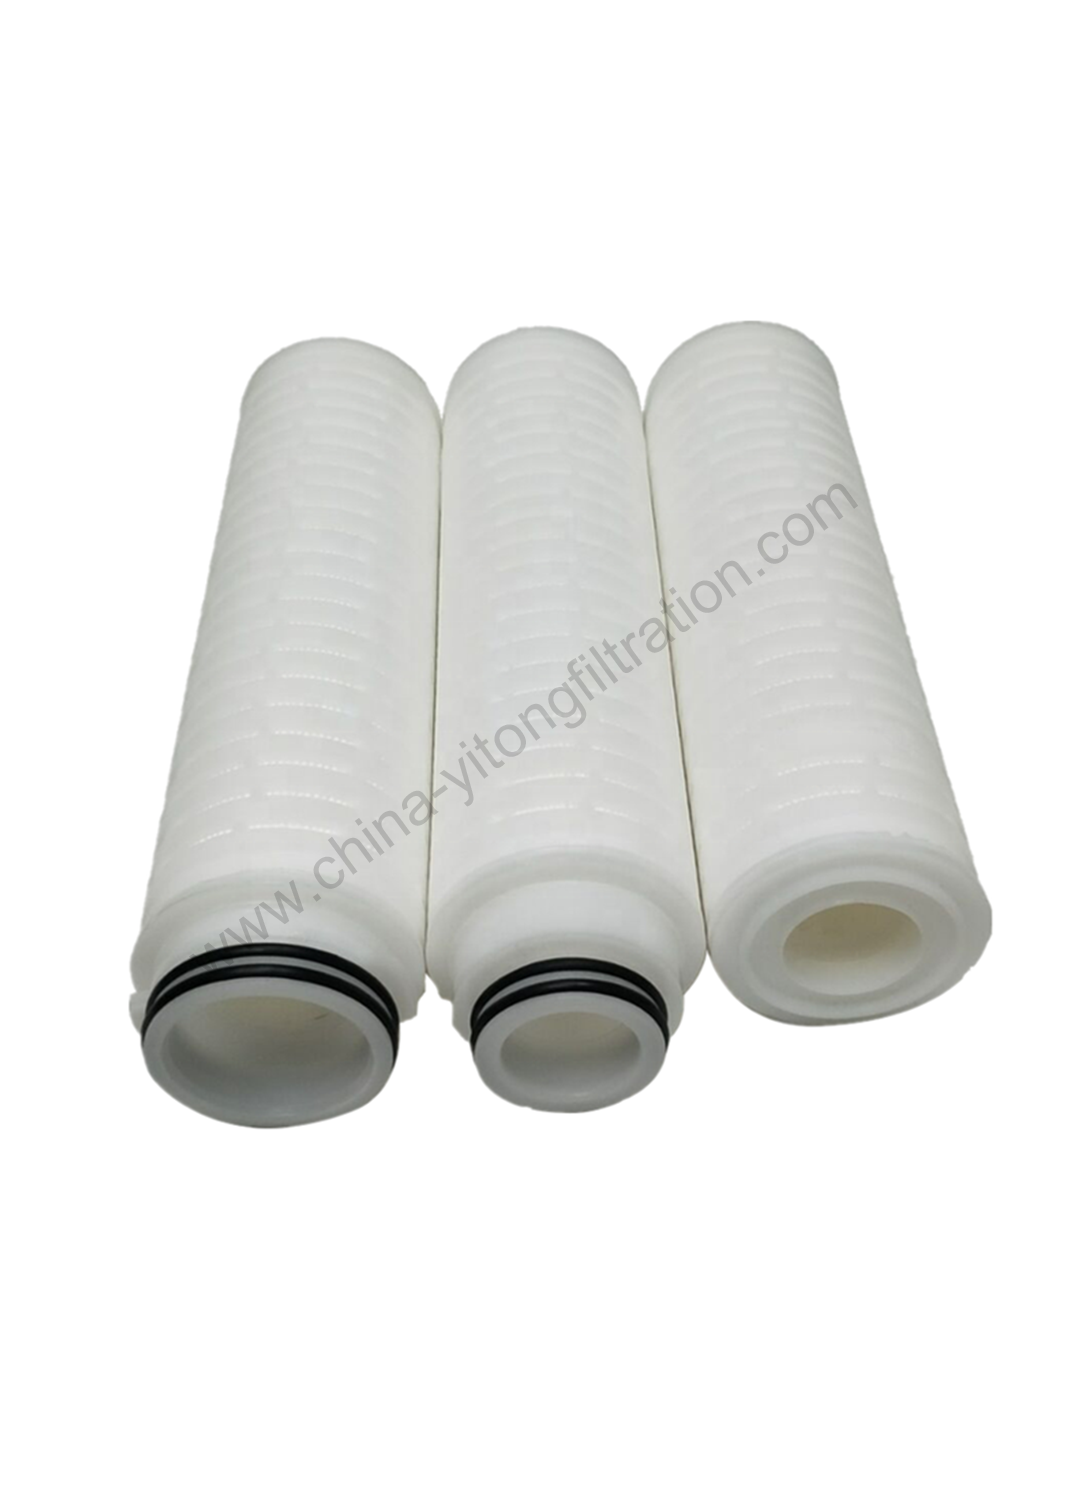 Nylon Pleated Filter Cartridge